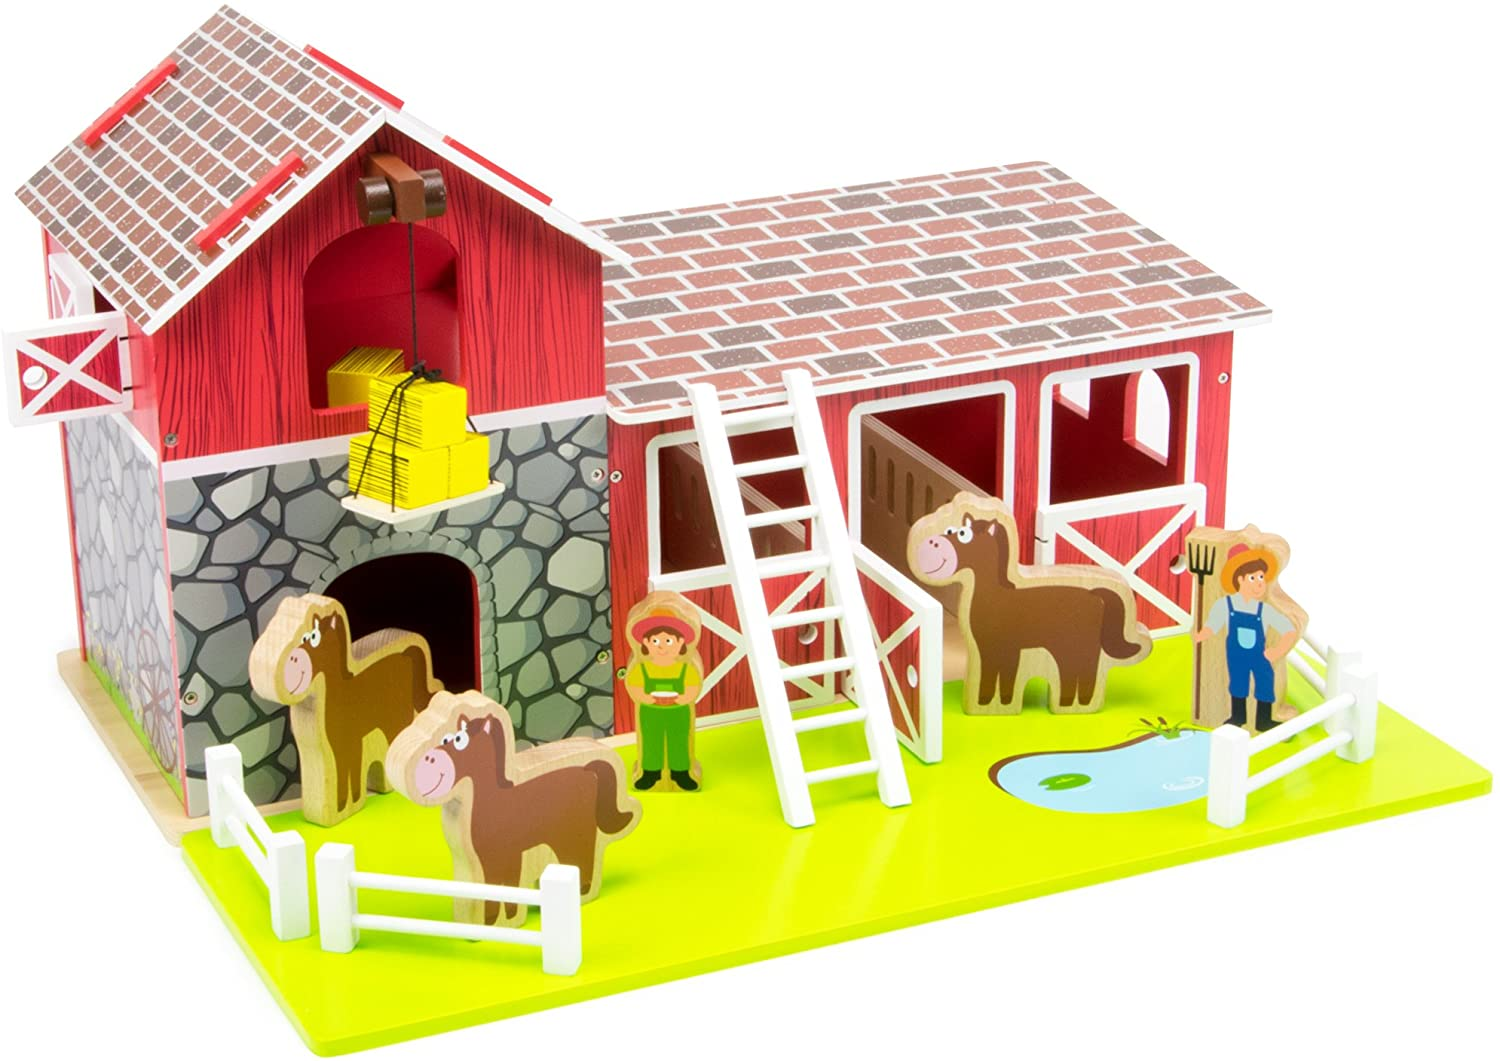 Saddle Up! Wooden Barnyard Playset | Includes Horses, Farmers, Hay, Lift, Fences, and Stable | Farm Toy Packed in with Animal and Farmer Dolls | Barn Corral Opens Up and Features Working Doors